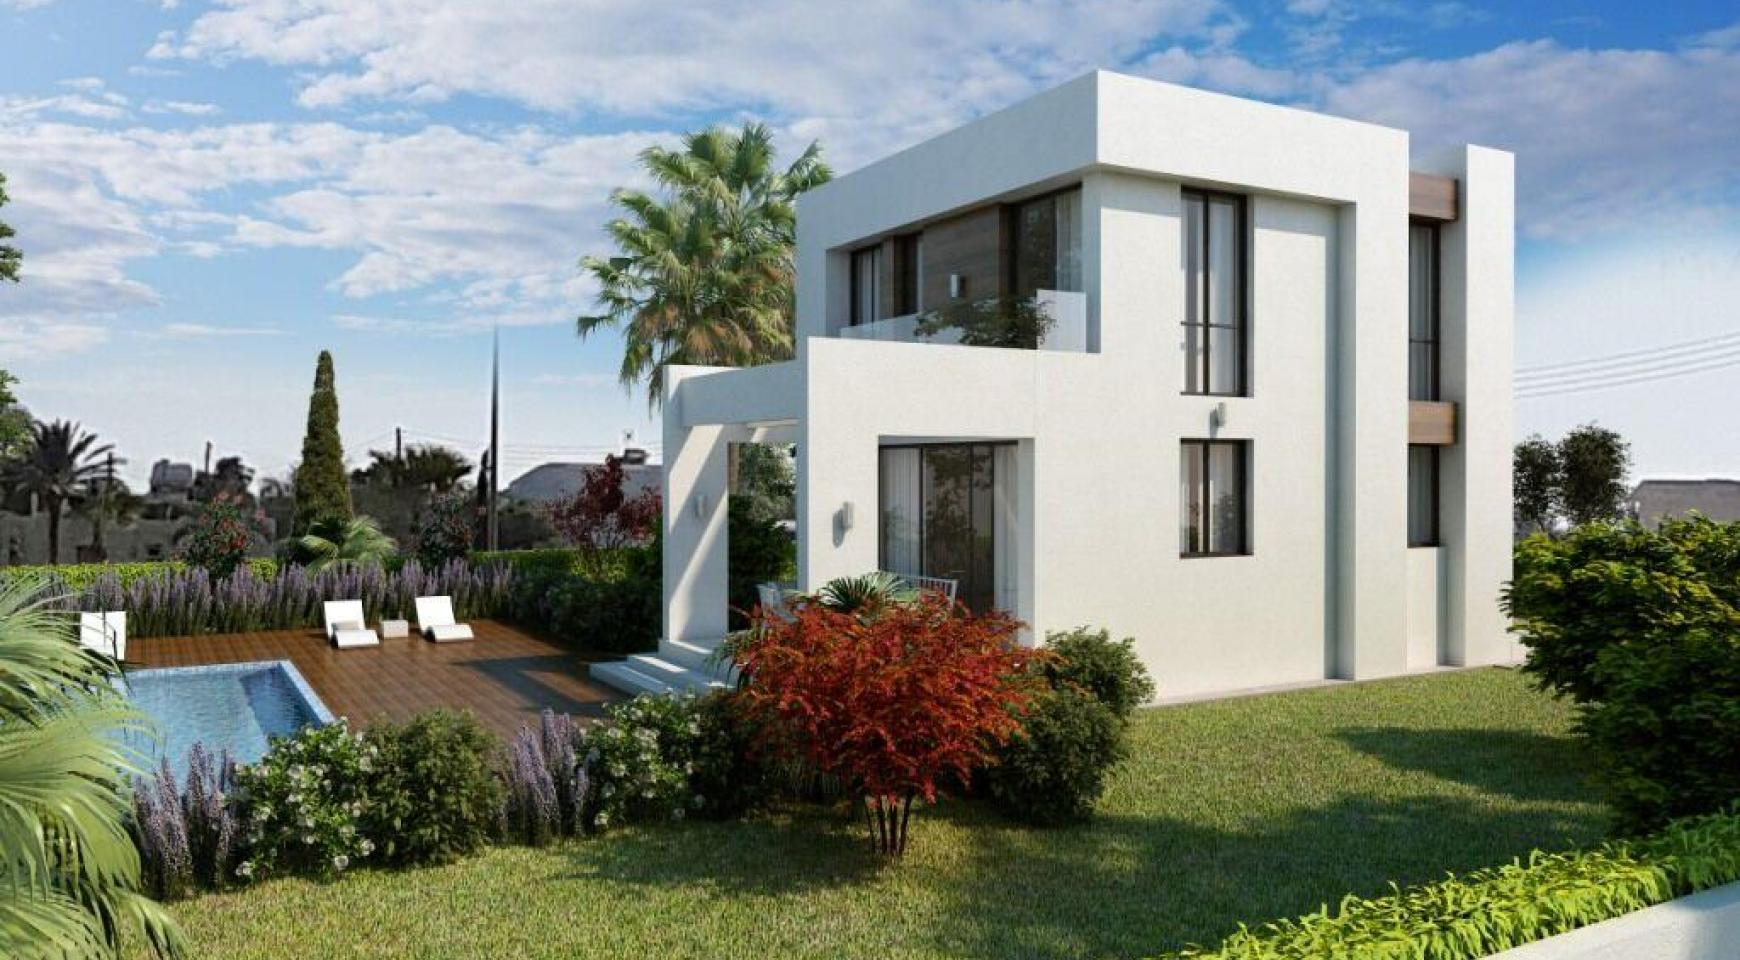 Modern 3 Bedroom Villa in a Complex near the Beach - 2